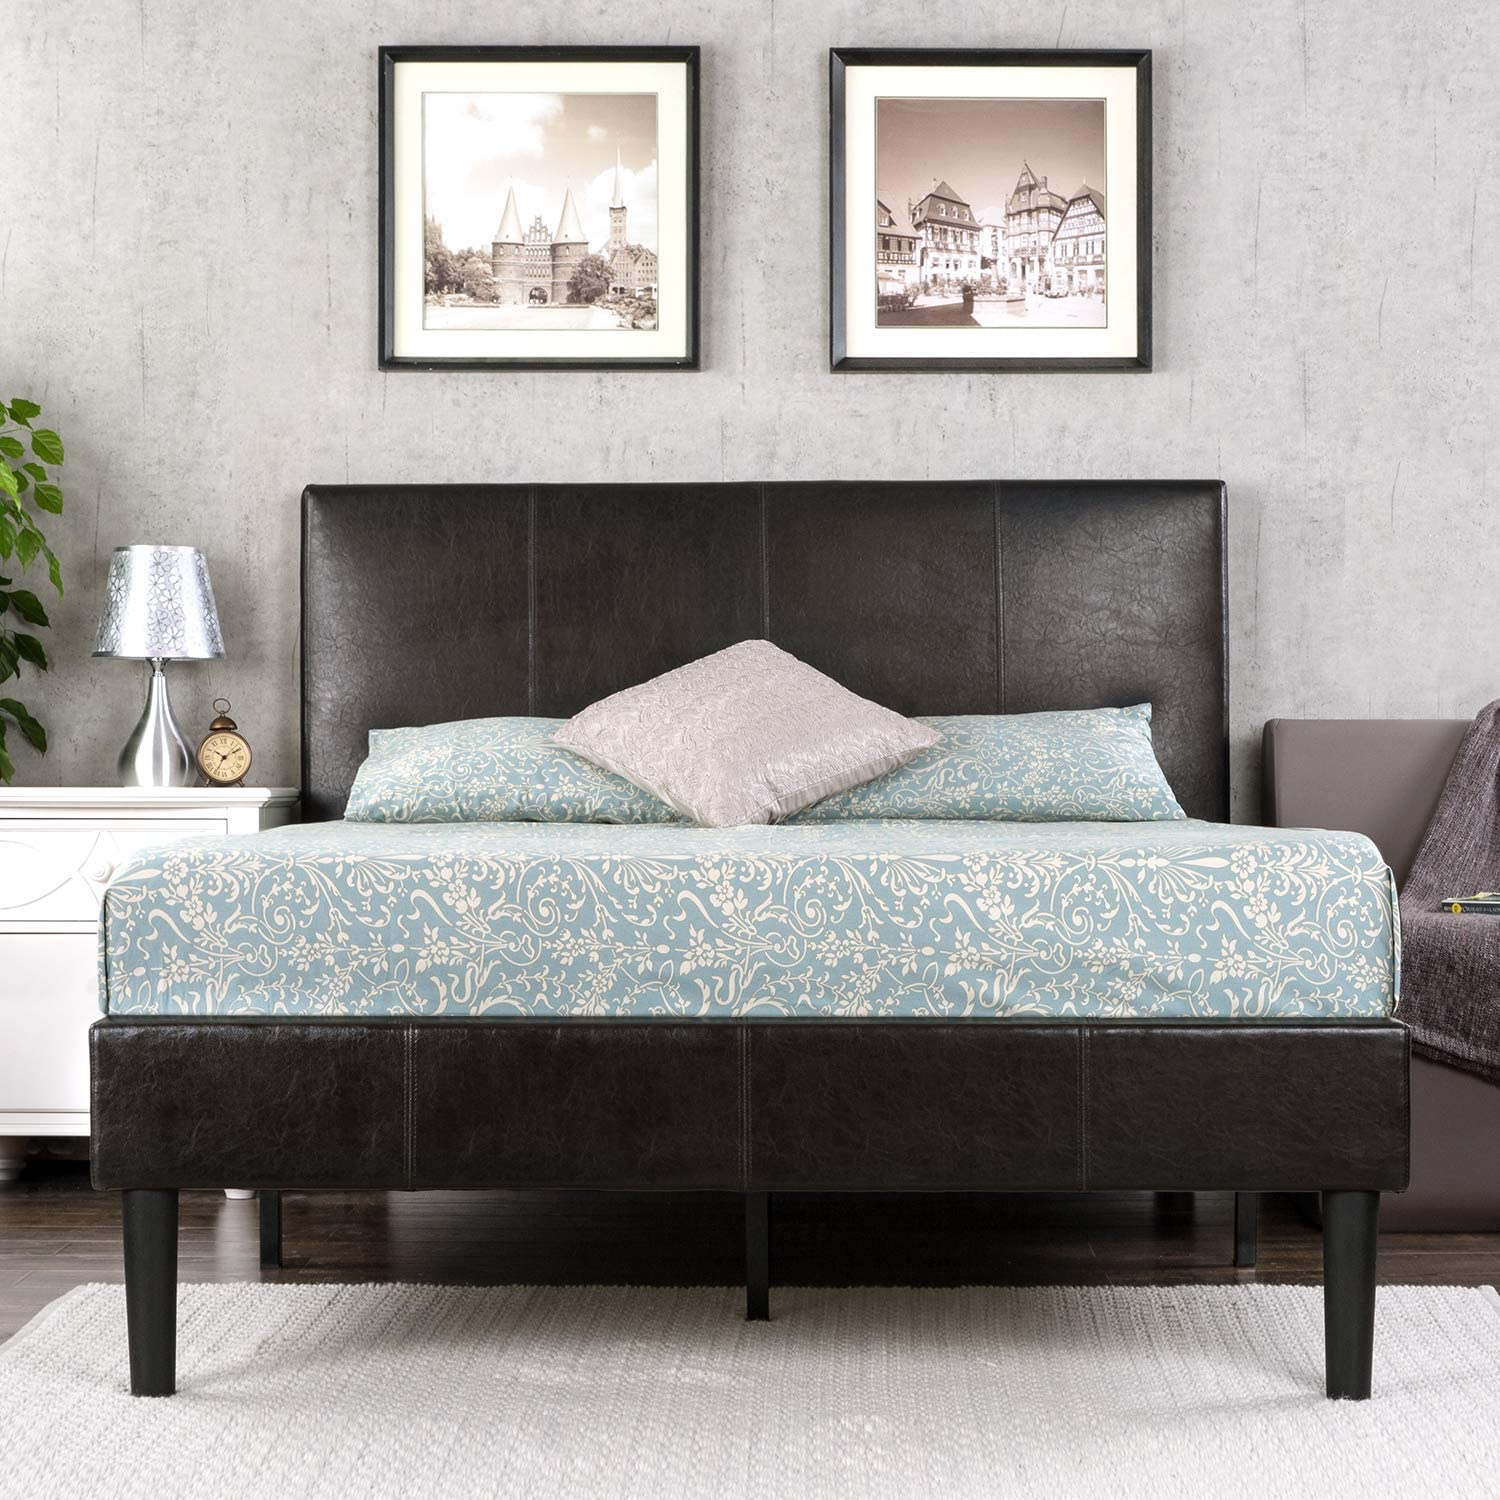 Zinus Deluxe Faux Leather Upholstered Platform Bed with Wooden Slats Queen